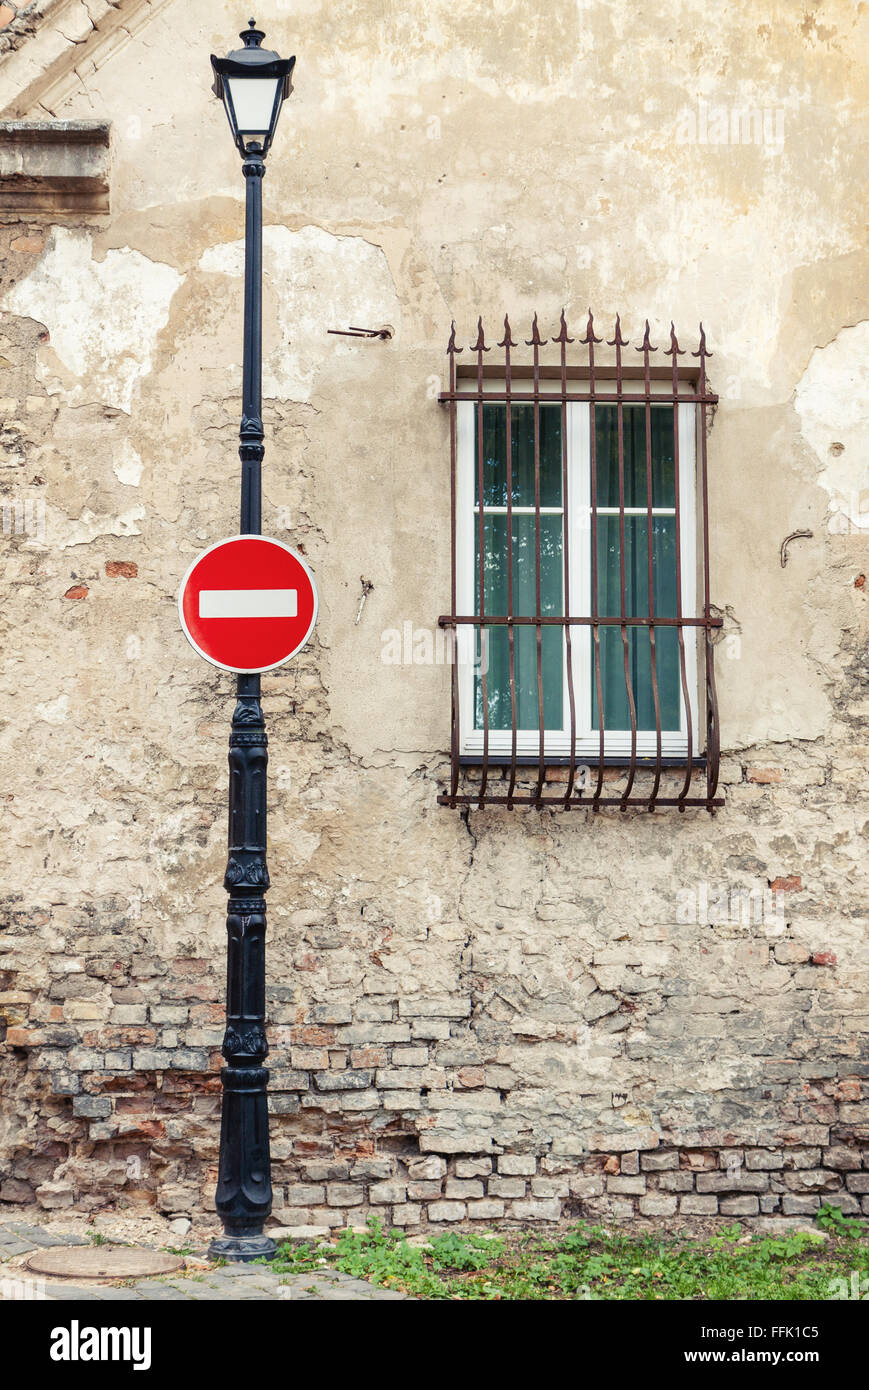 No entry road sign on street lamp post - Stock Image